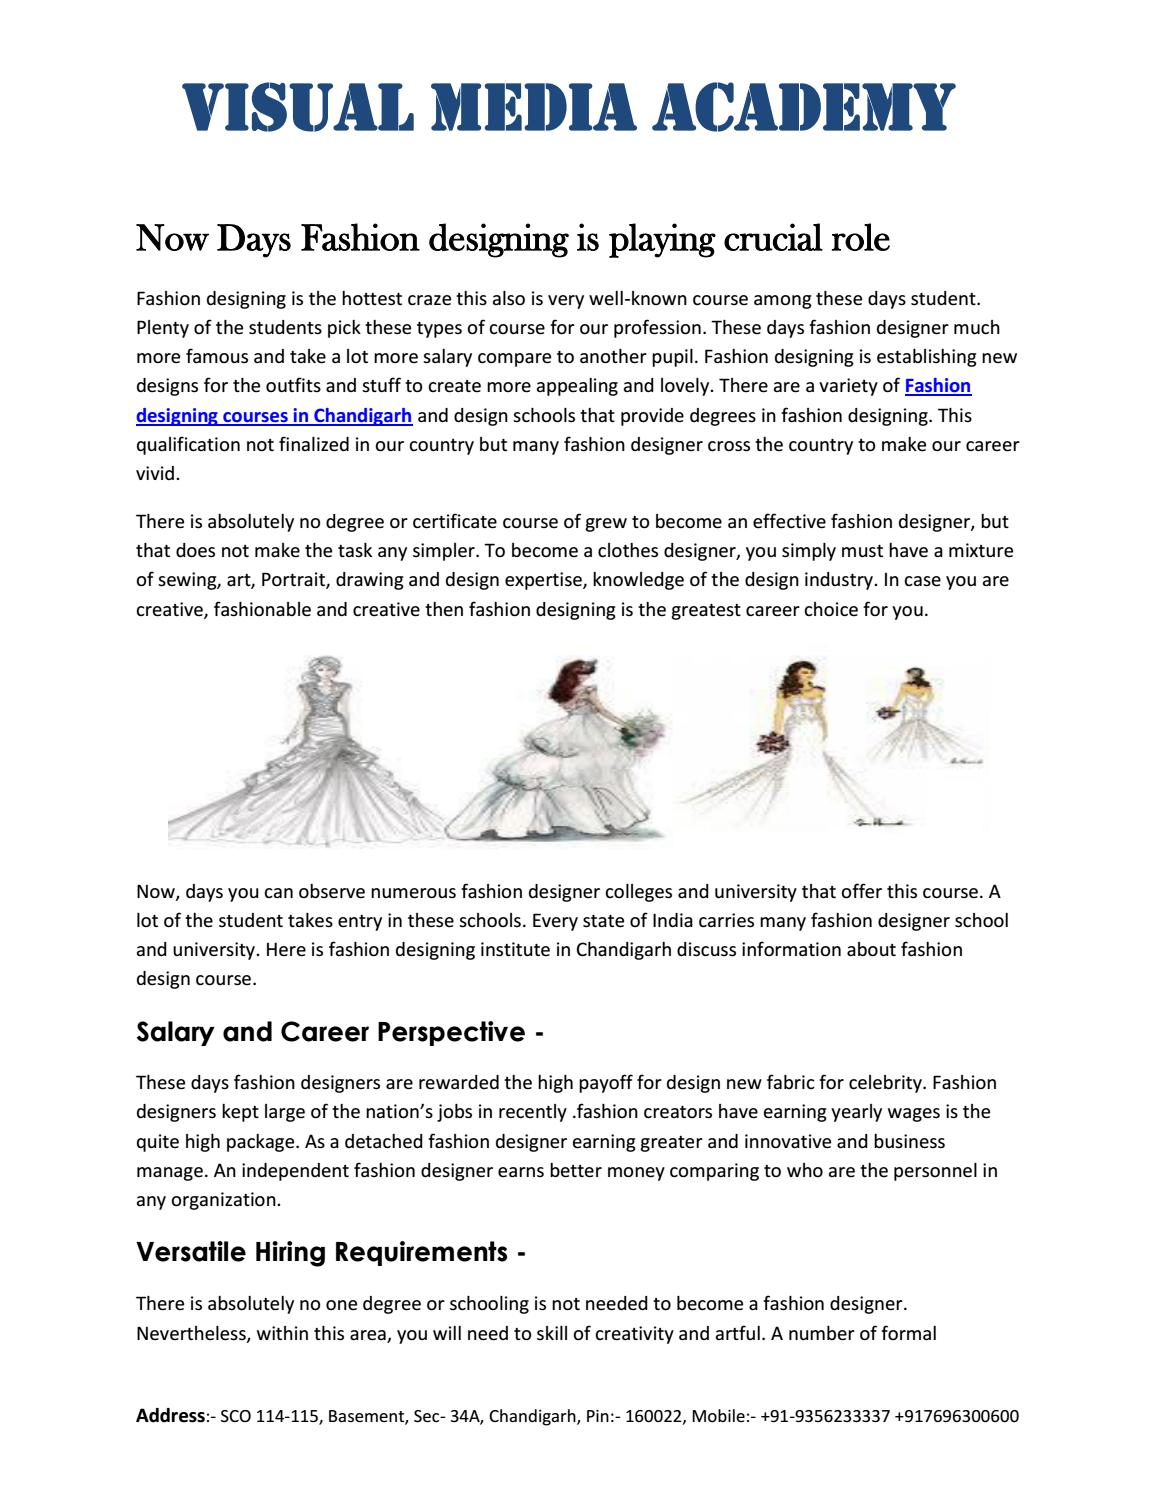 Fashion Designing Courses In Chandigarh By Visual Media Academy Issuu